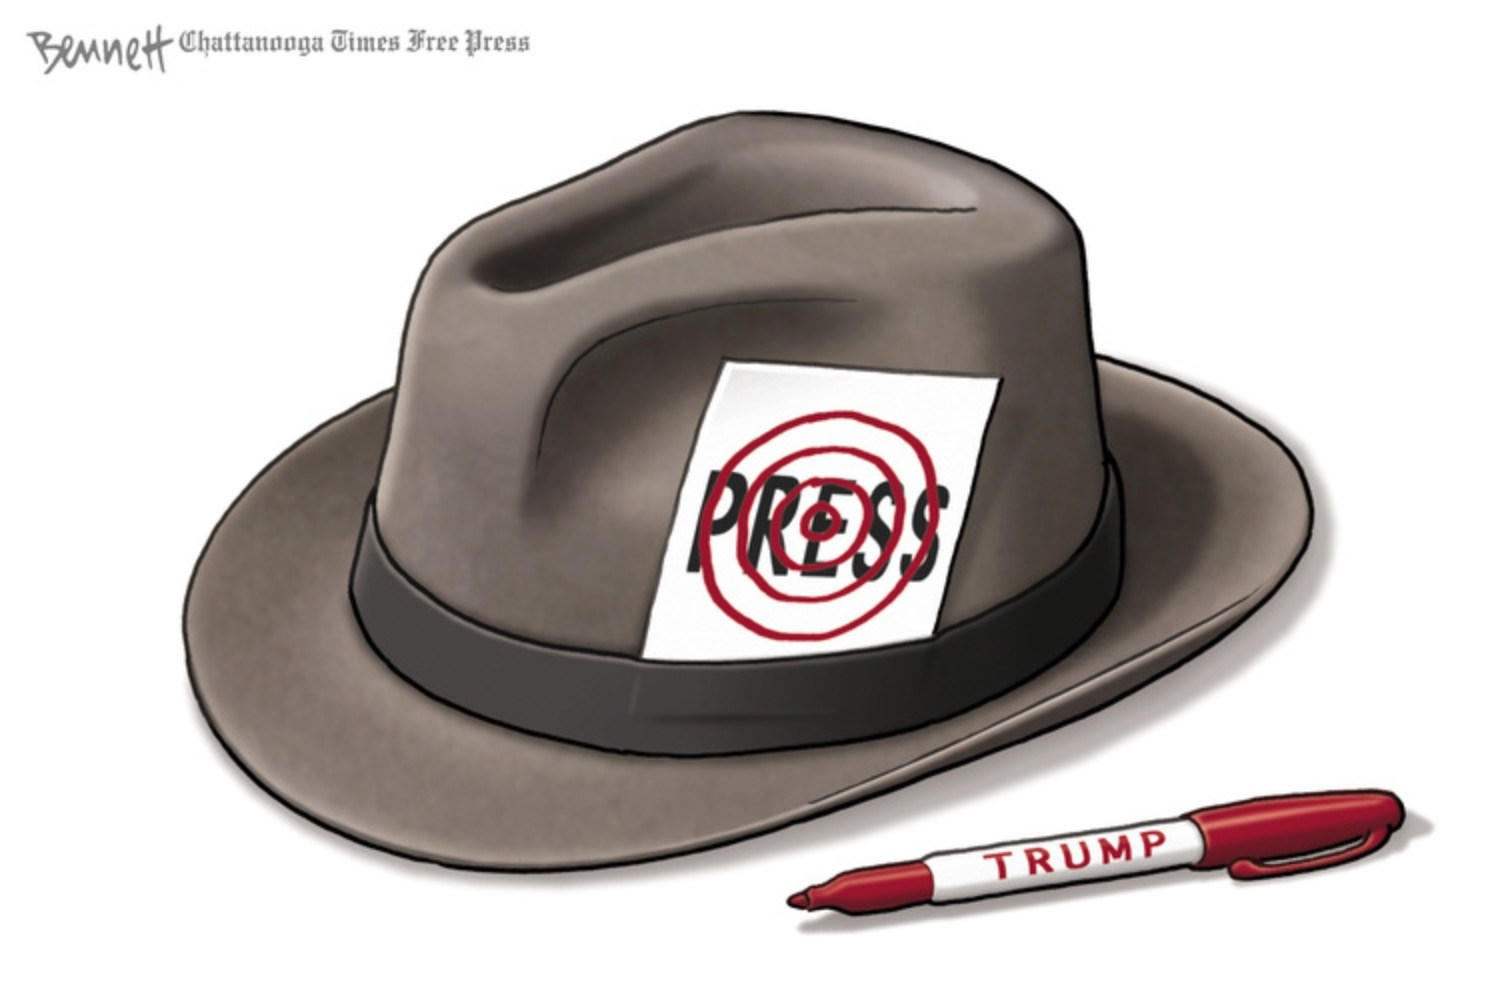 How cartoonists are joining today's #FreePress campaign